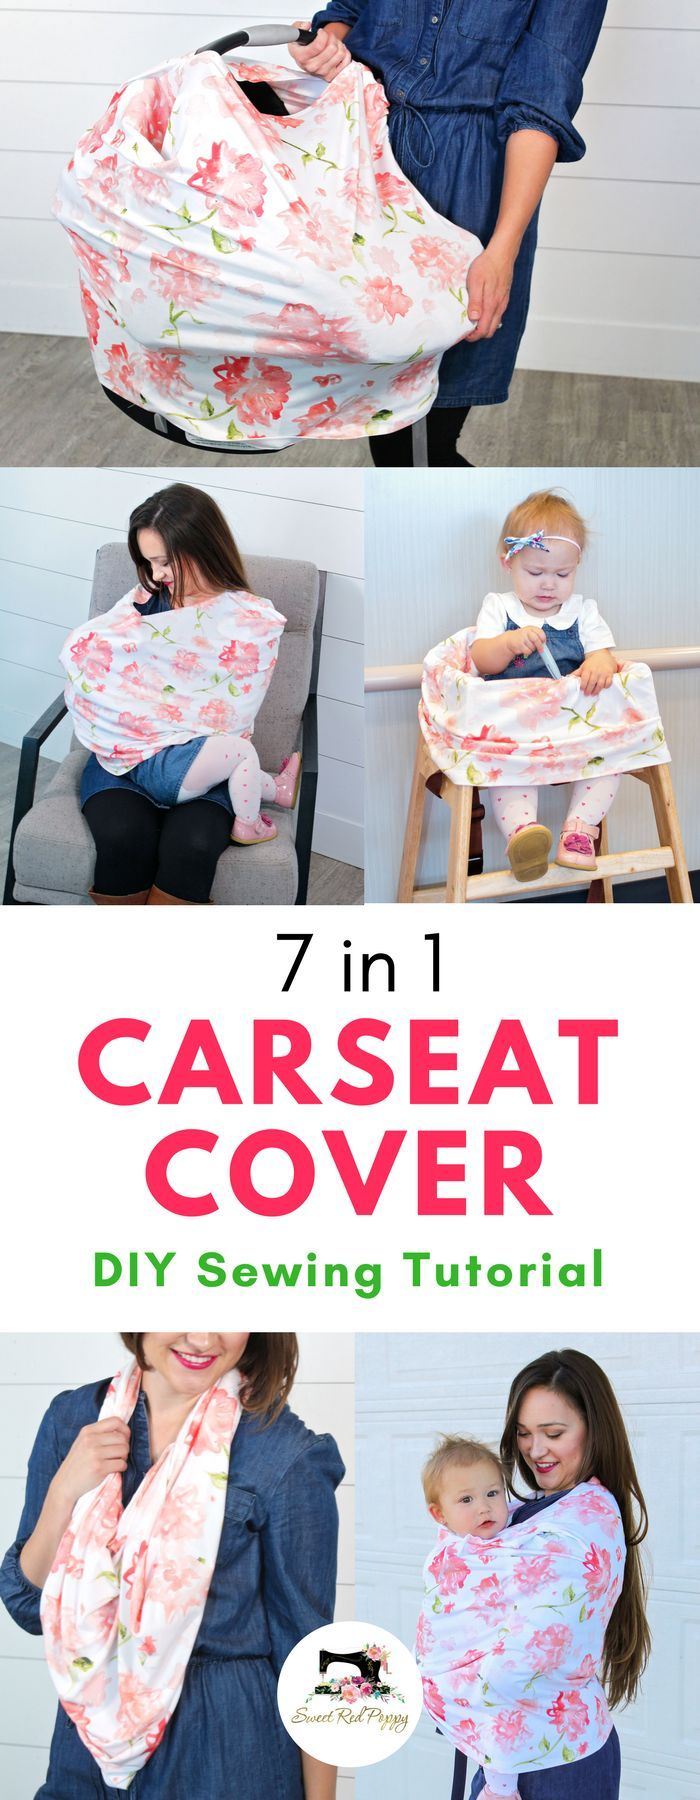 7 in 1 Carseat Canopy Cover Sewing Tutorial with Free Pattern and Custom Printed Spoonflower Fabric